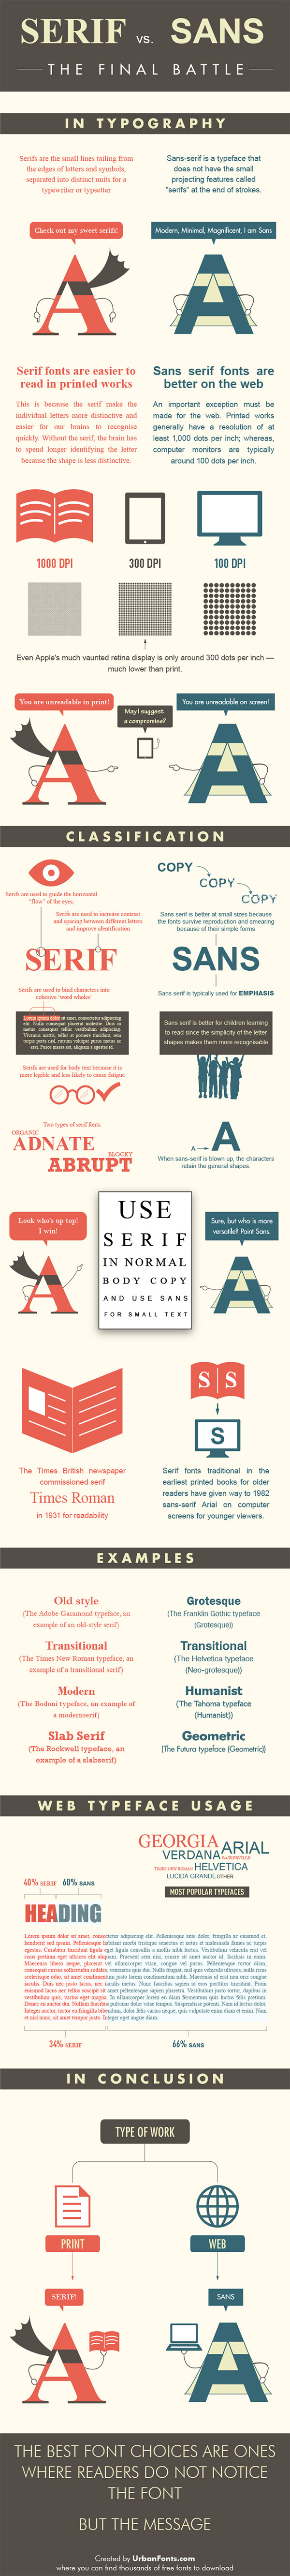 serif vs sans serif1 Serif vs Sans: The Final Battle In Typography [Infographic]